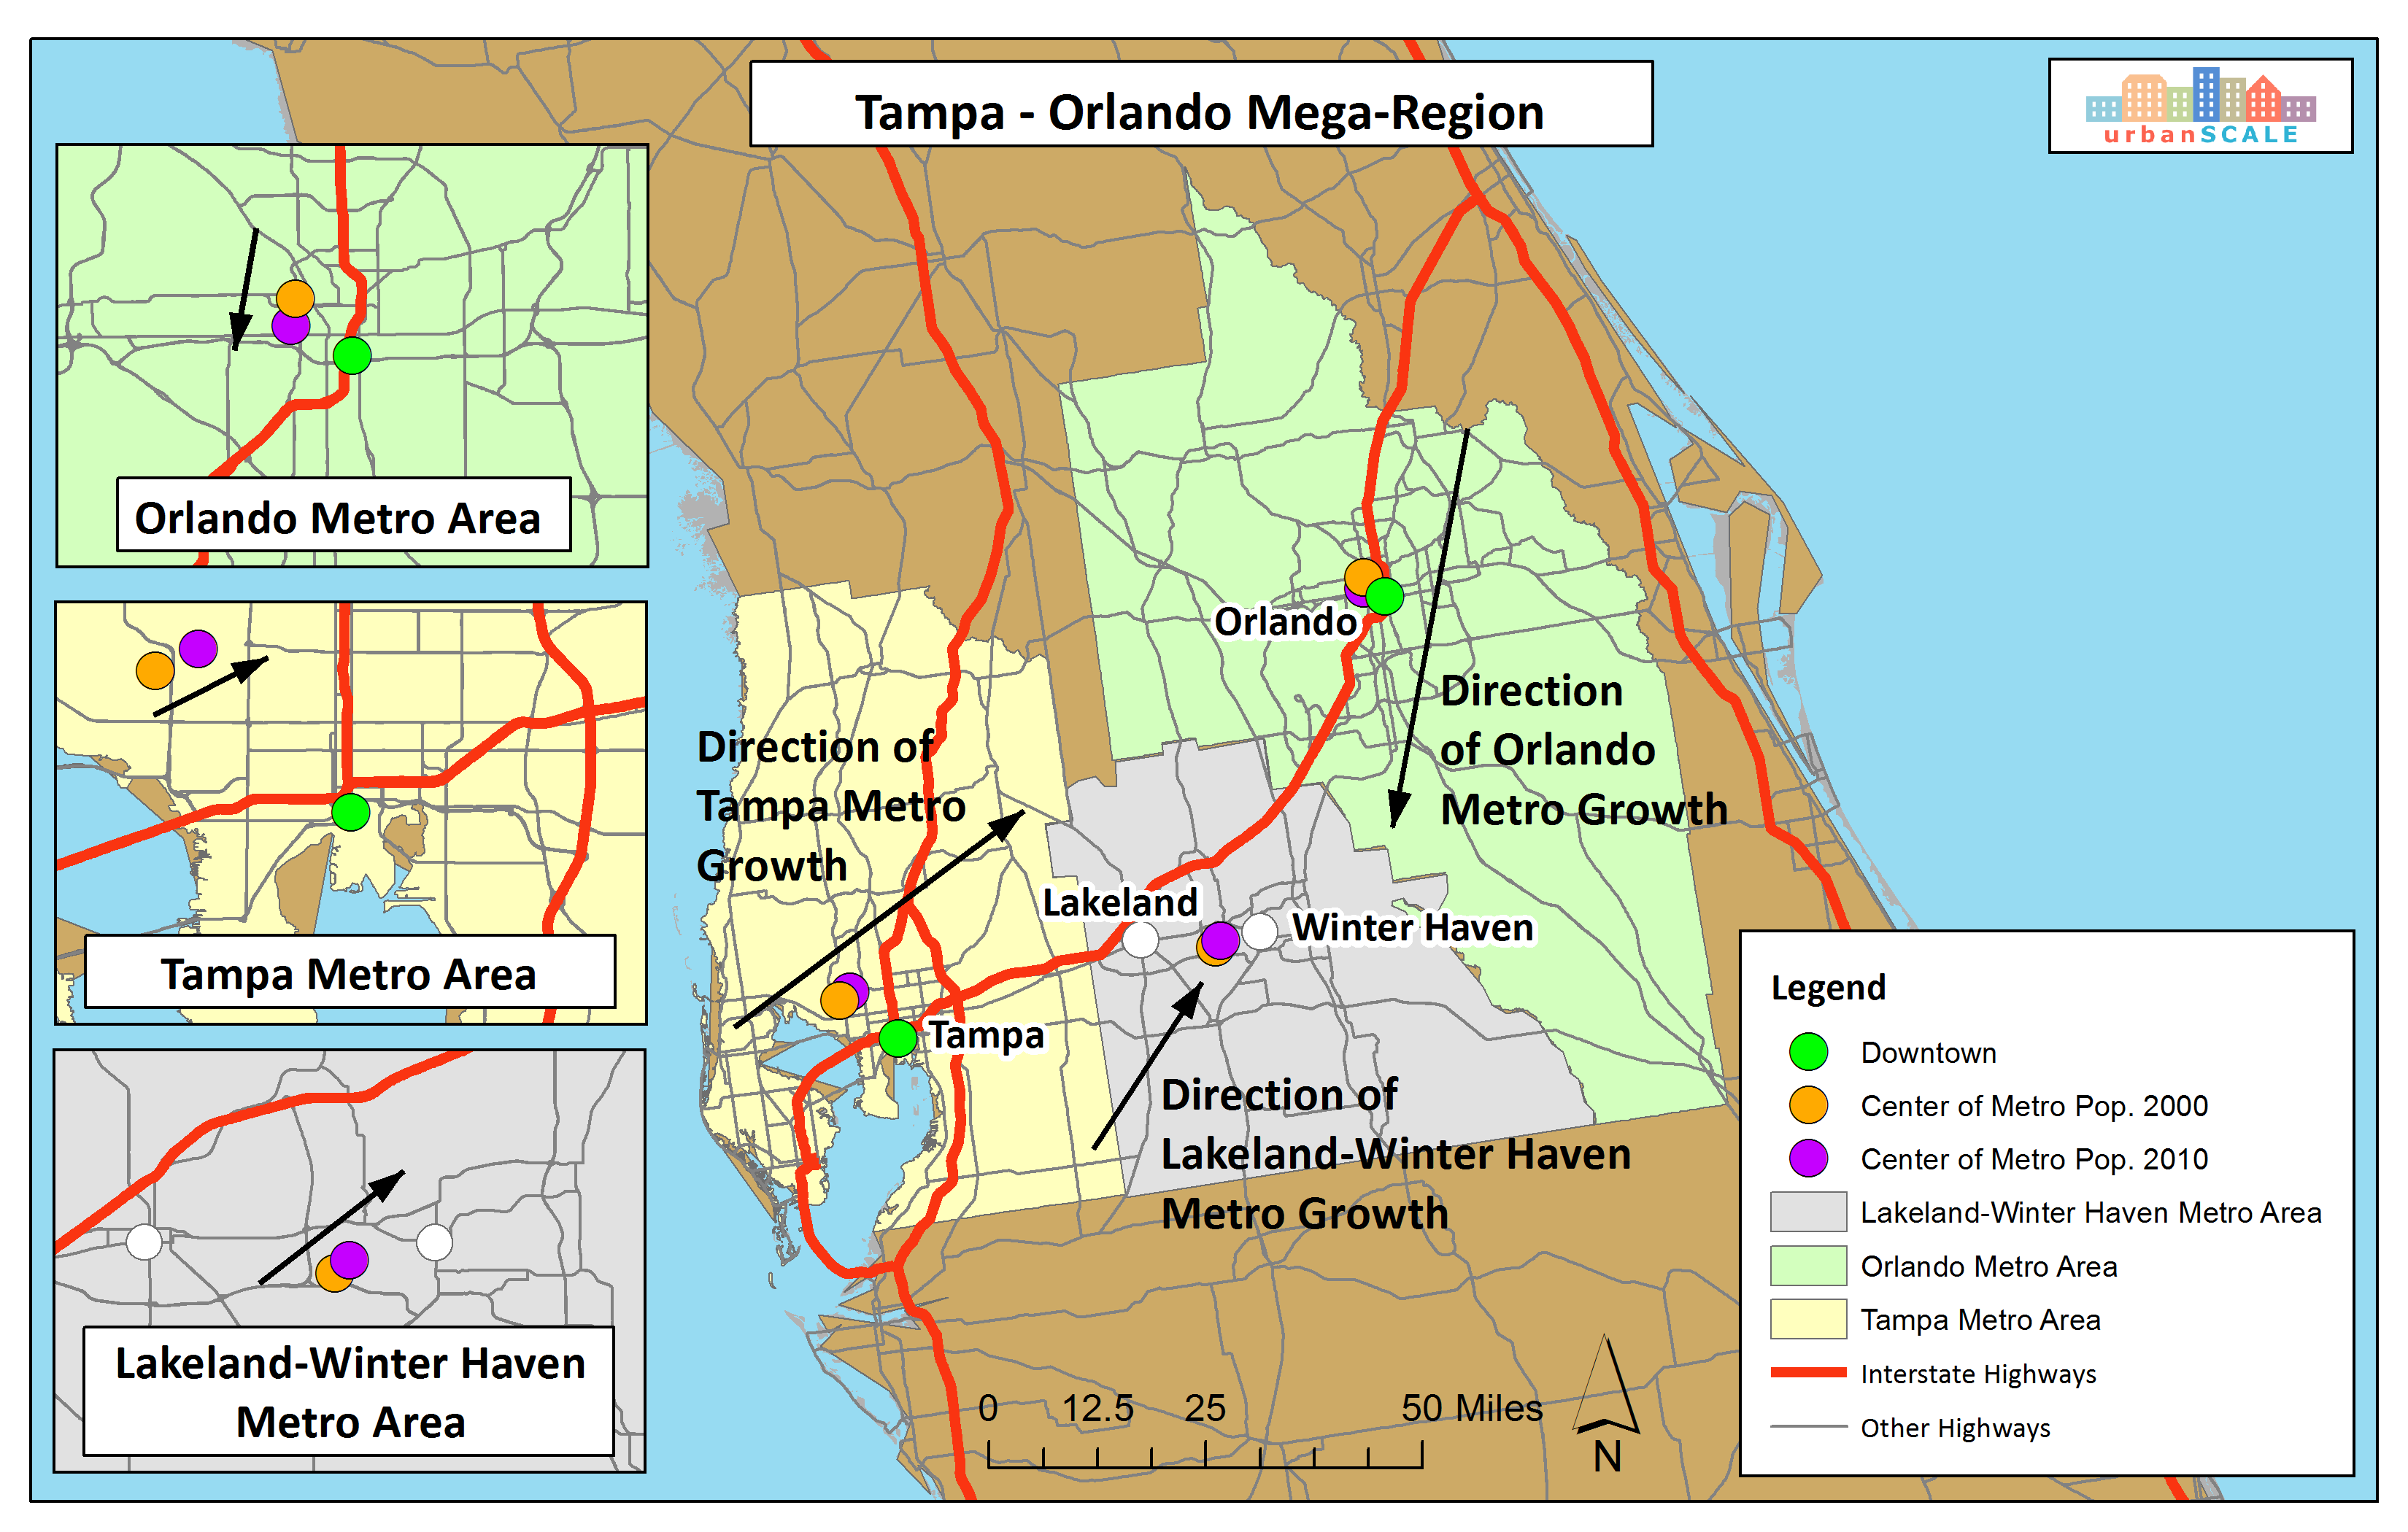 Orlando Metro Map.5 Key Ingredients To Create A Mega Region Urbanscale Com